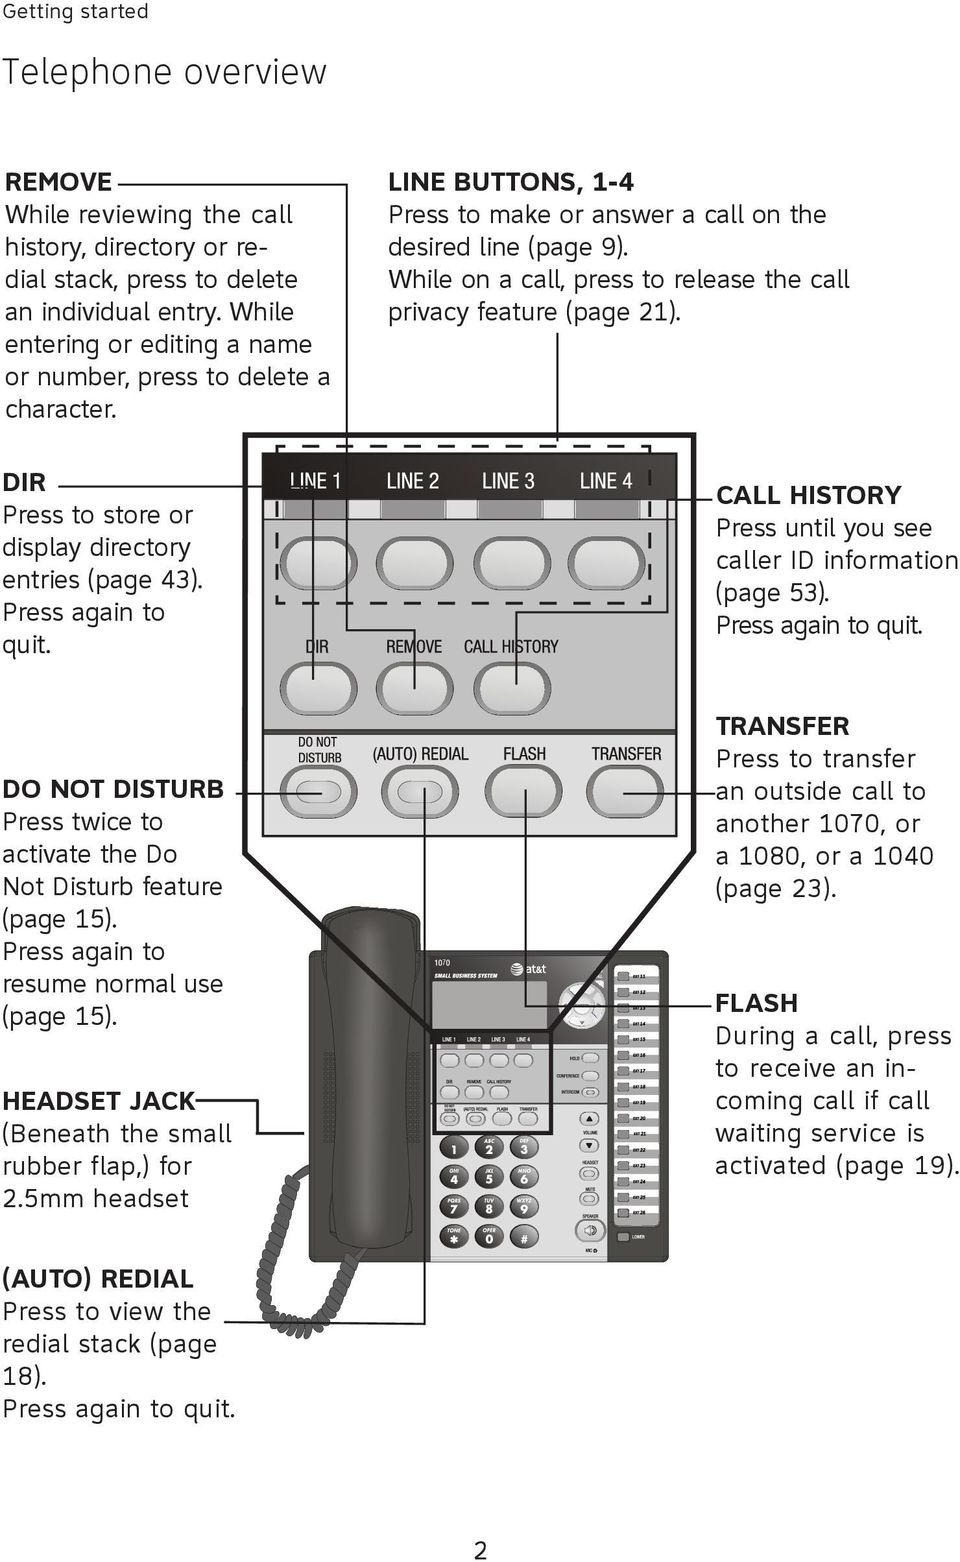 LINE BUTTONS, 1-4 Press to make or answer a call on the desired line (page 9). While on a call, press to release the call privacy feature (page 21).